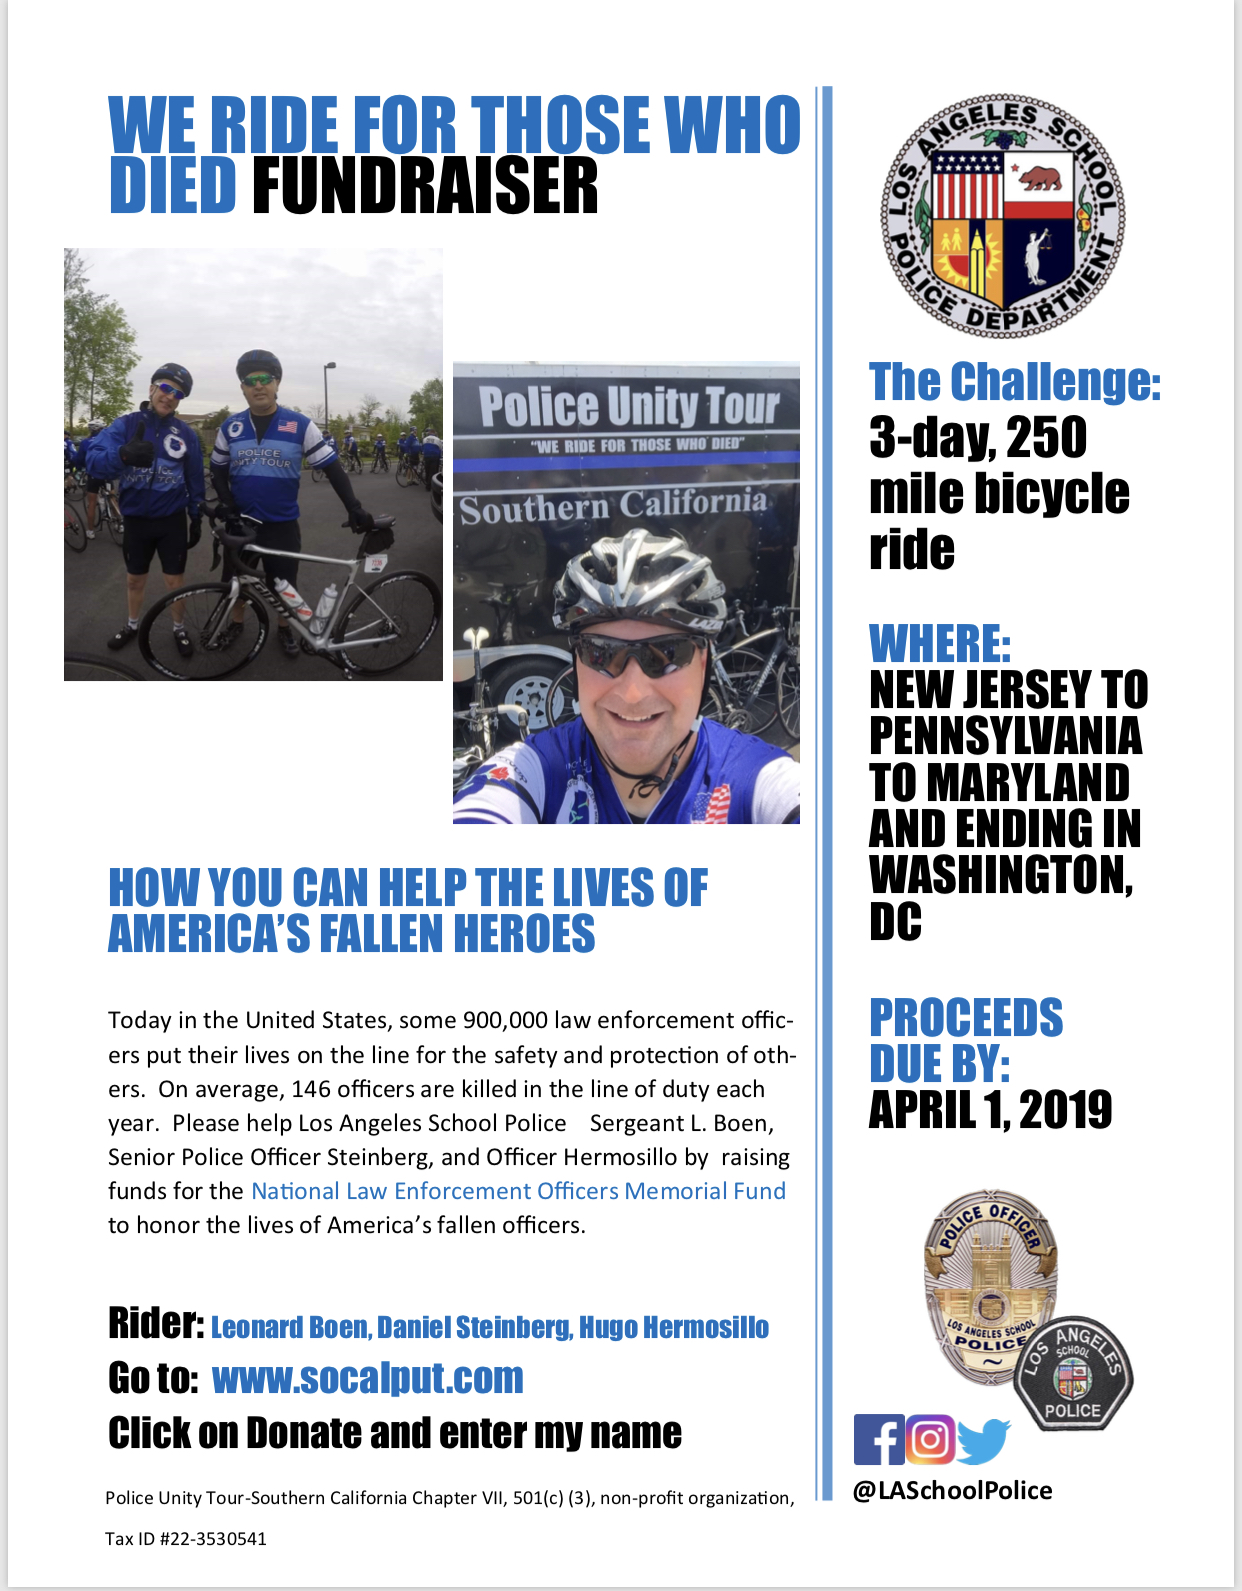 We Ride for Those Who Died Fundraiser